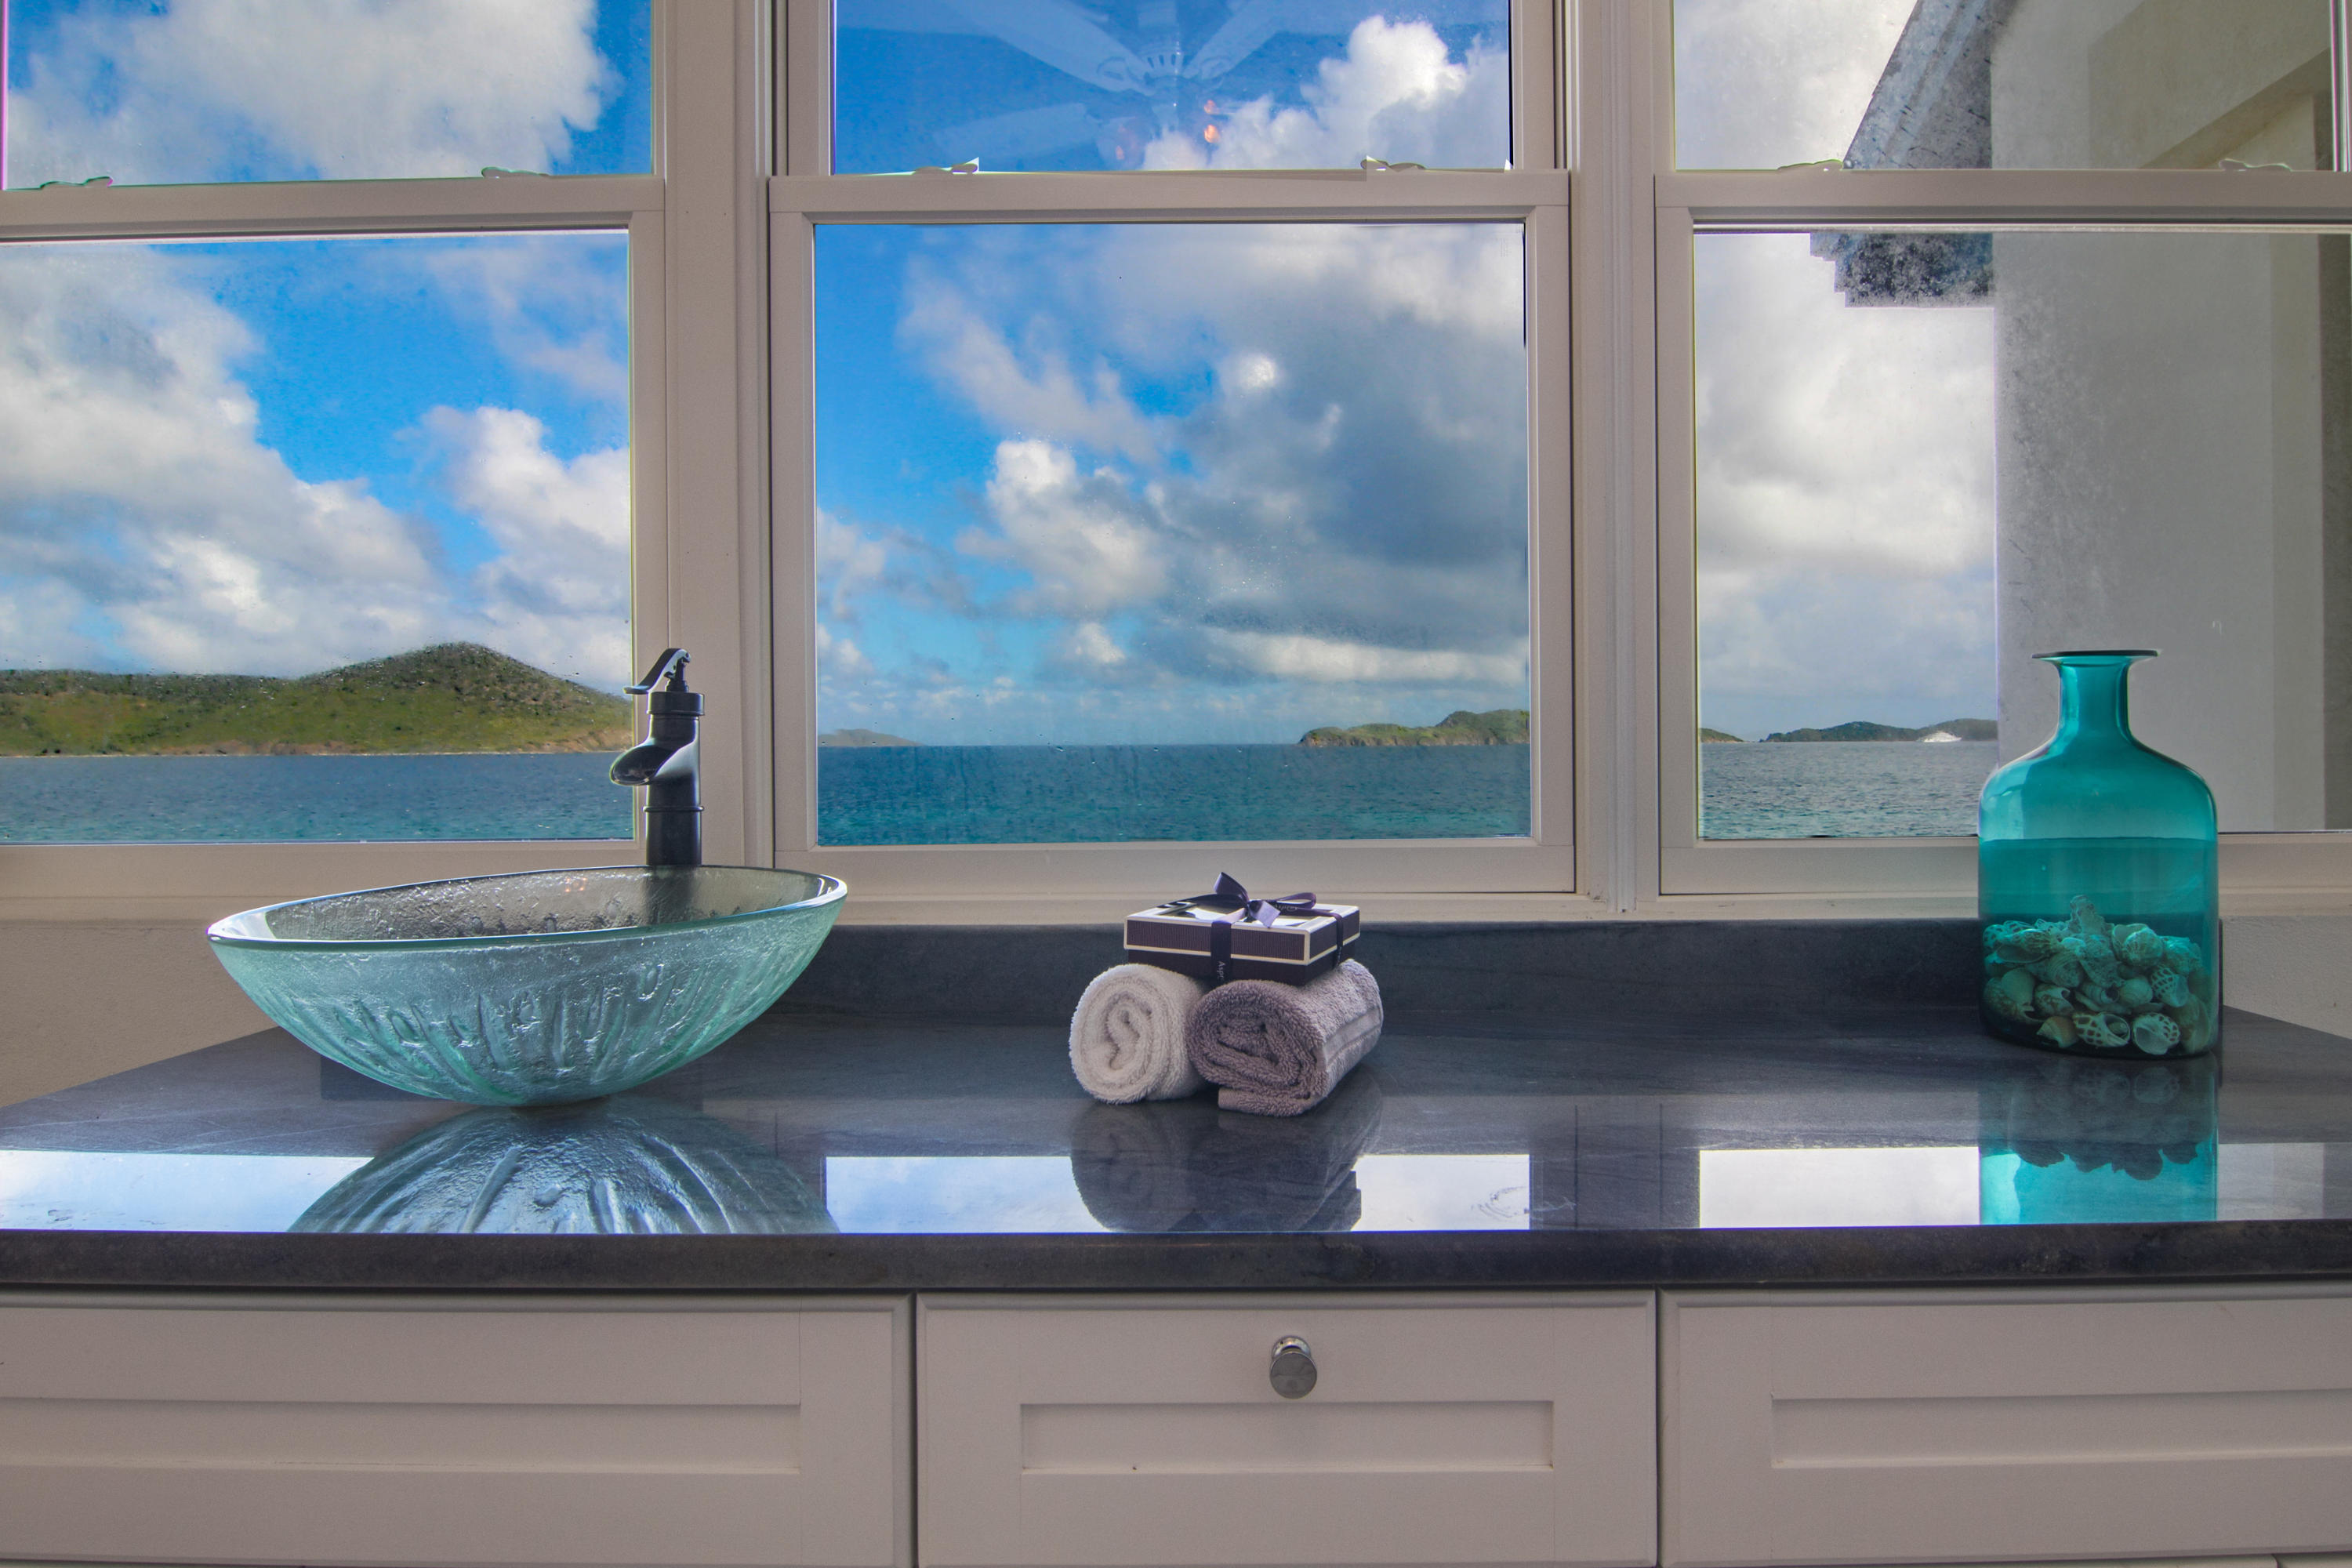 Additional photo for property listing at 11B-7 Smith Bay EE 11B-7 Smith Bay EE St Thomas, Virgin Islands 00802 United States Virgin Islands